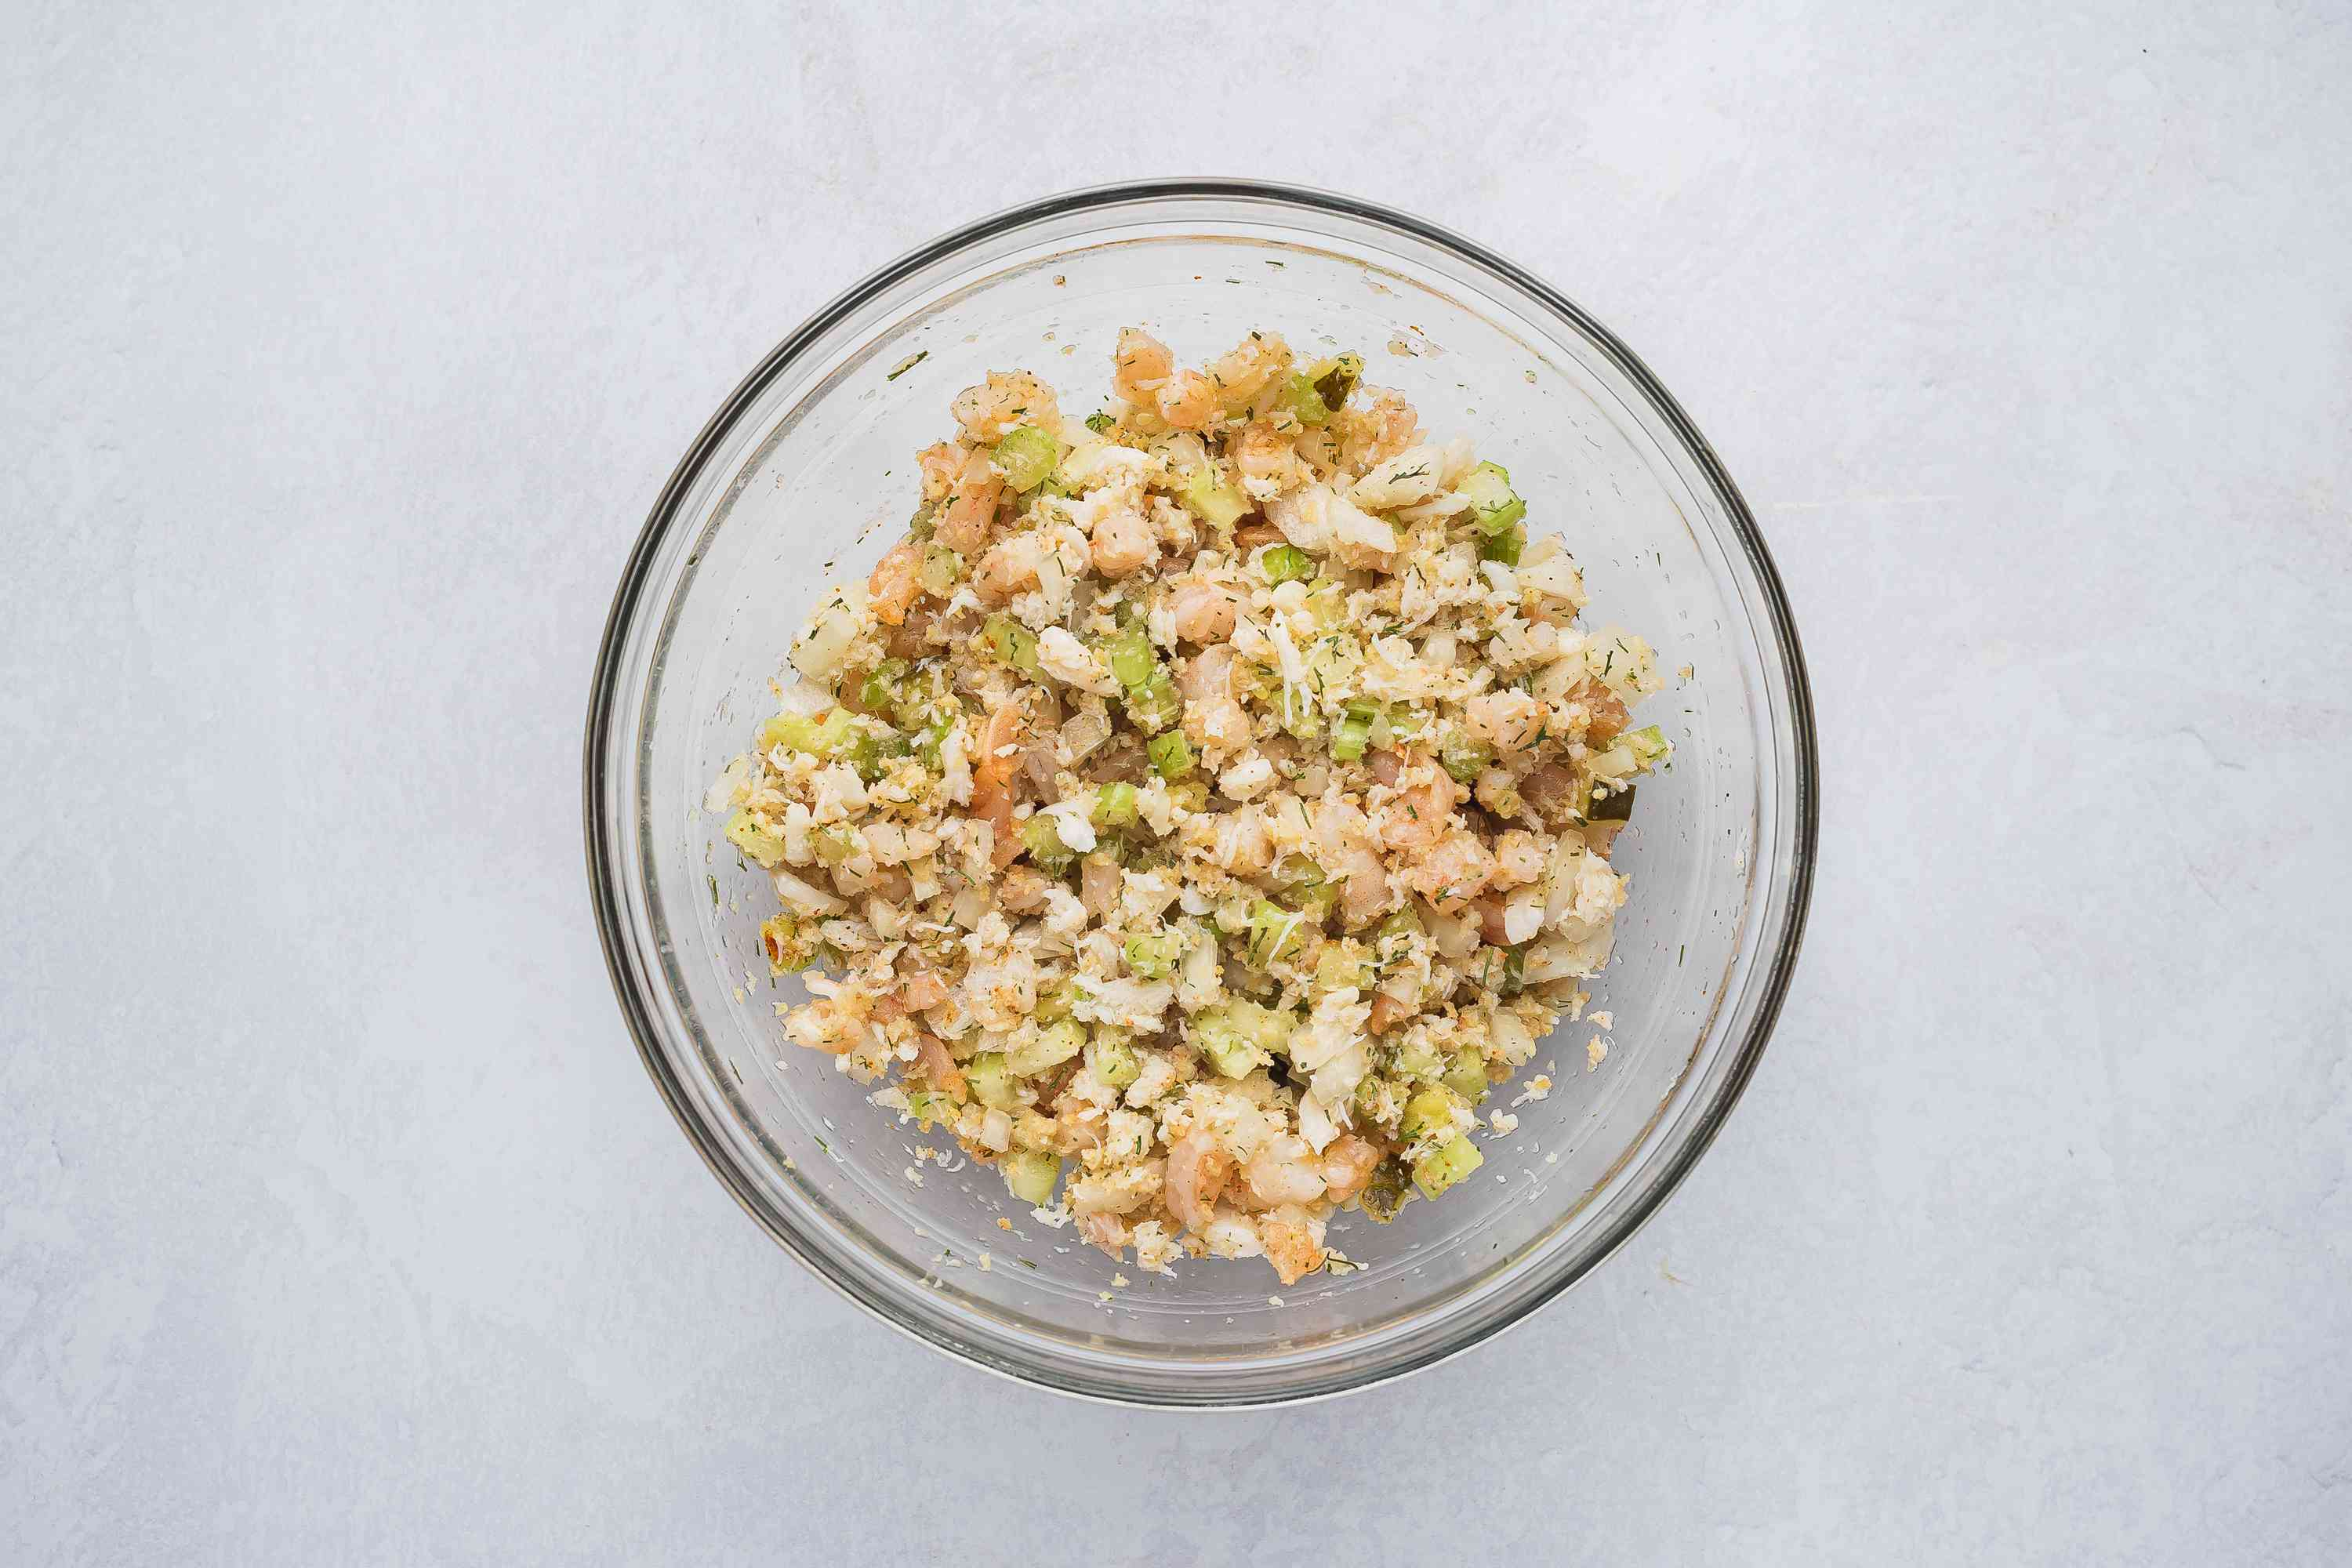 Crab and shrimp mixture in a bowl